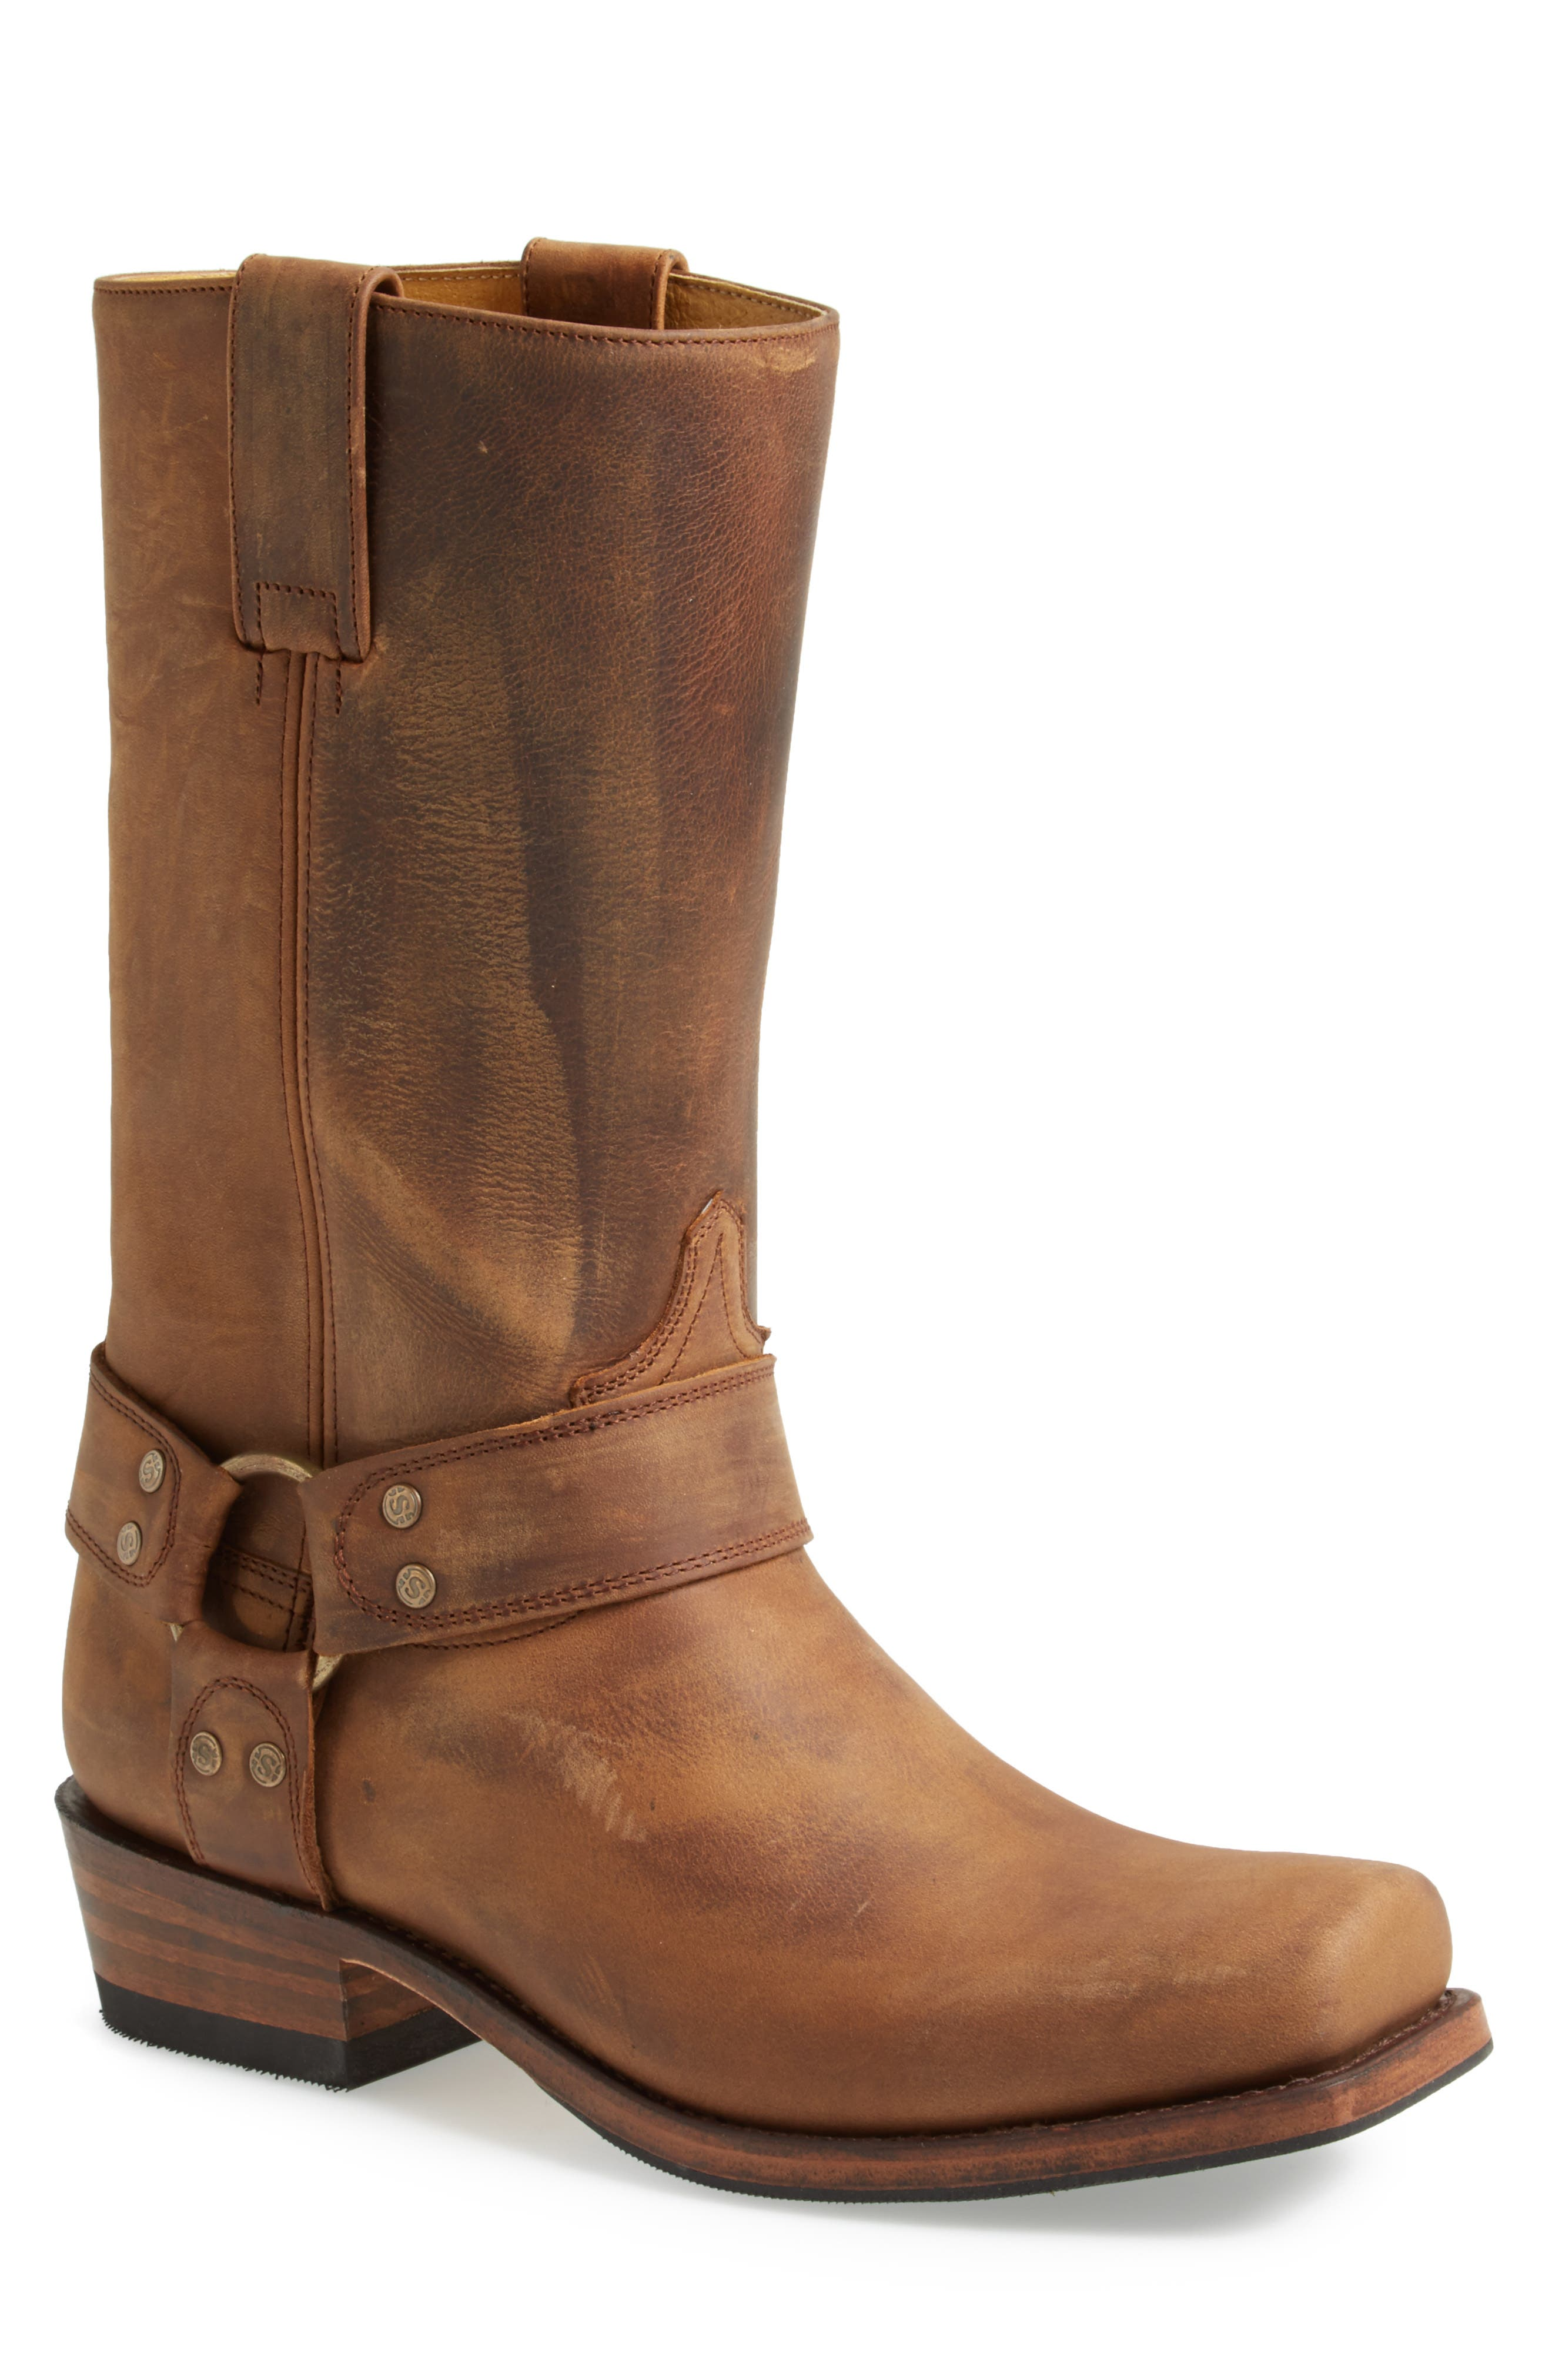 Boots Tall Harness Boot,                             Alternate thumbnail 3, color,                             TAN